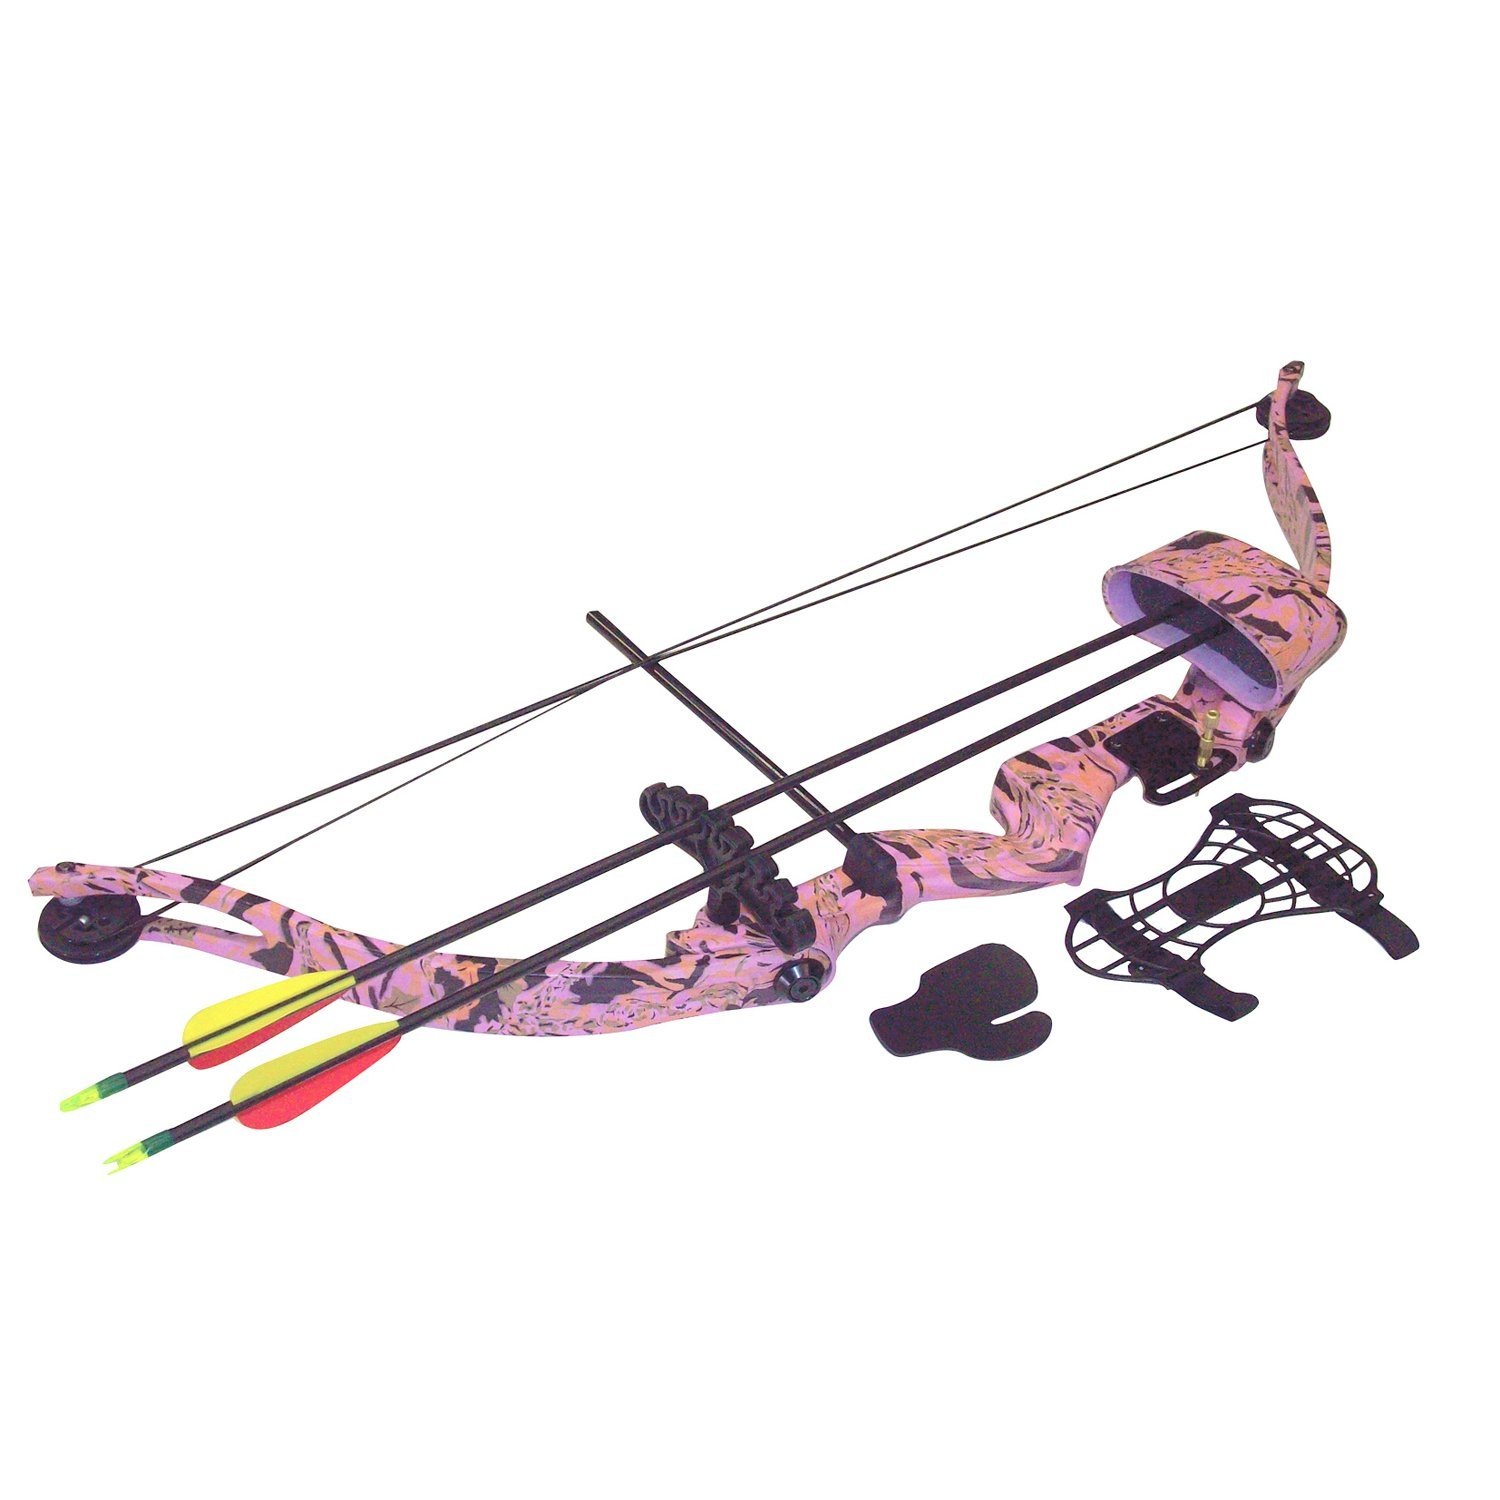 SA Sports Youth Majestic Compound Bow Set